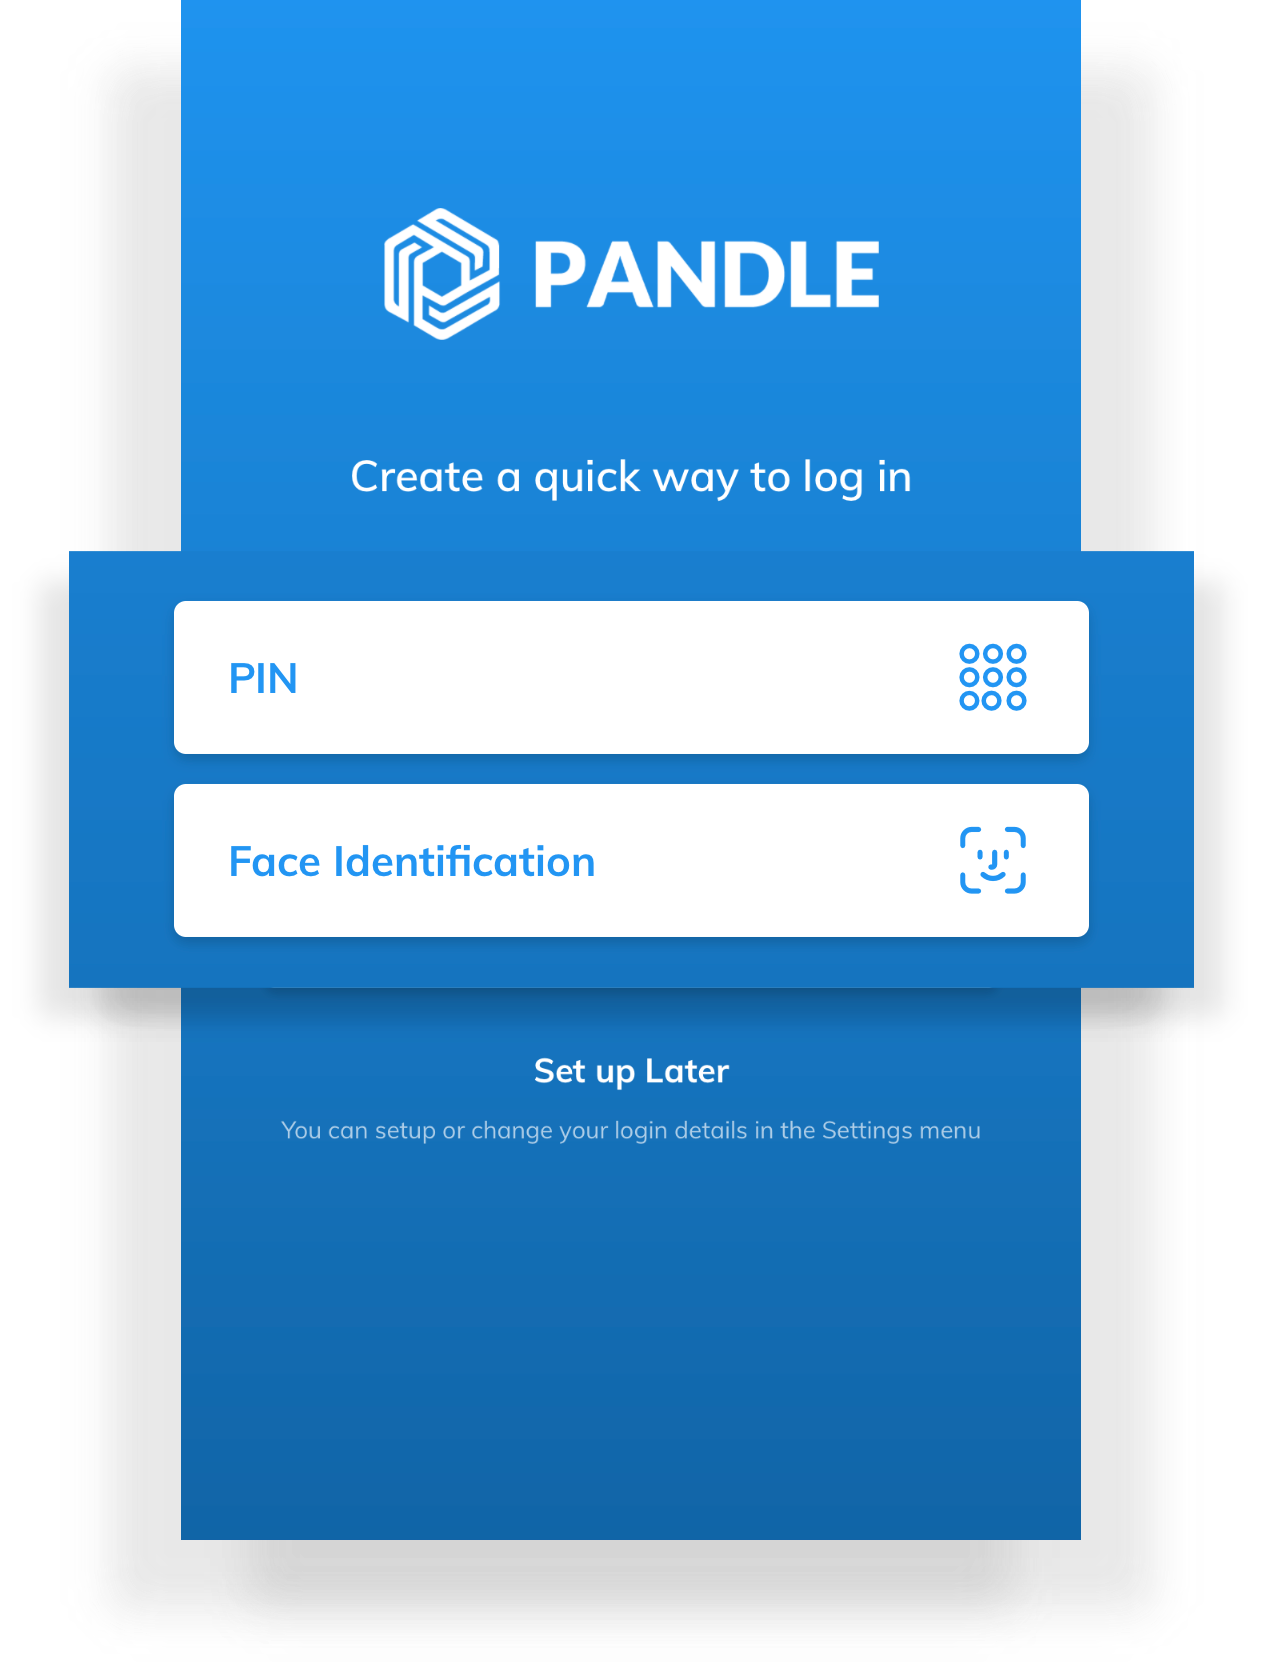 Introducing Biometric Login and Dashboards for Pandle Mobile 1